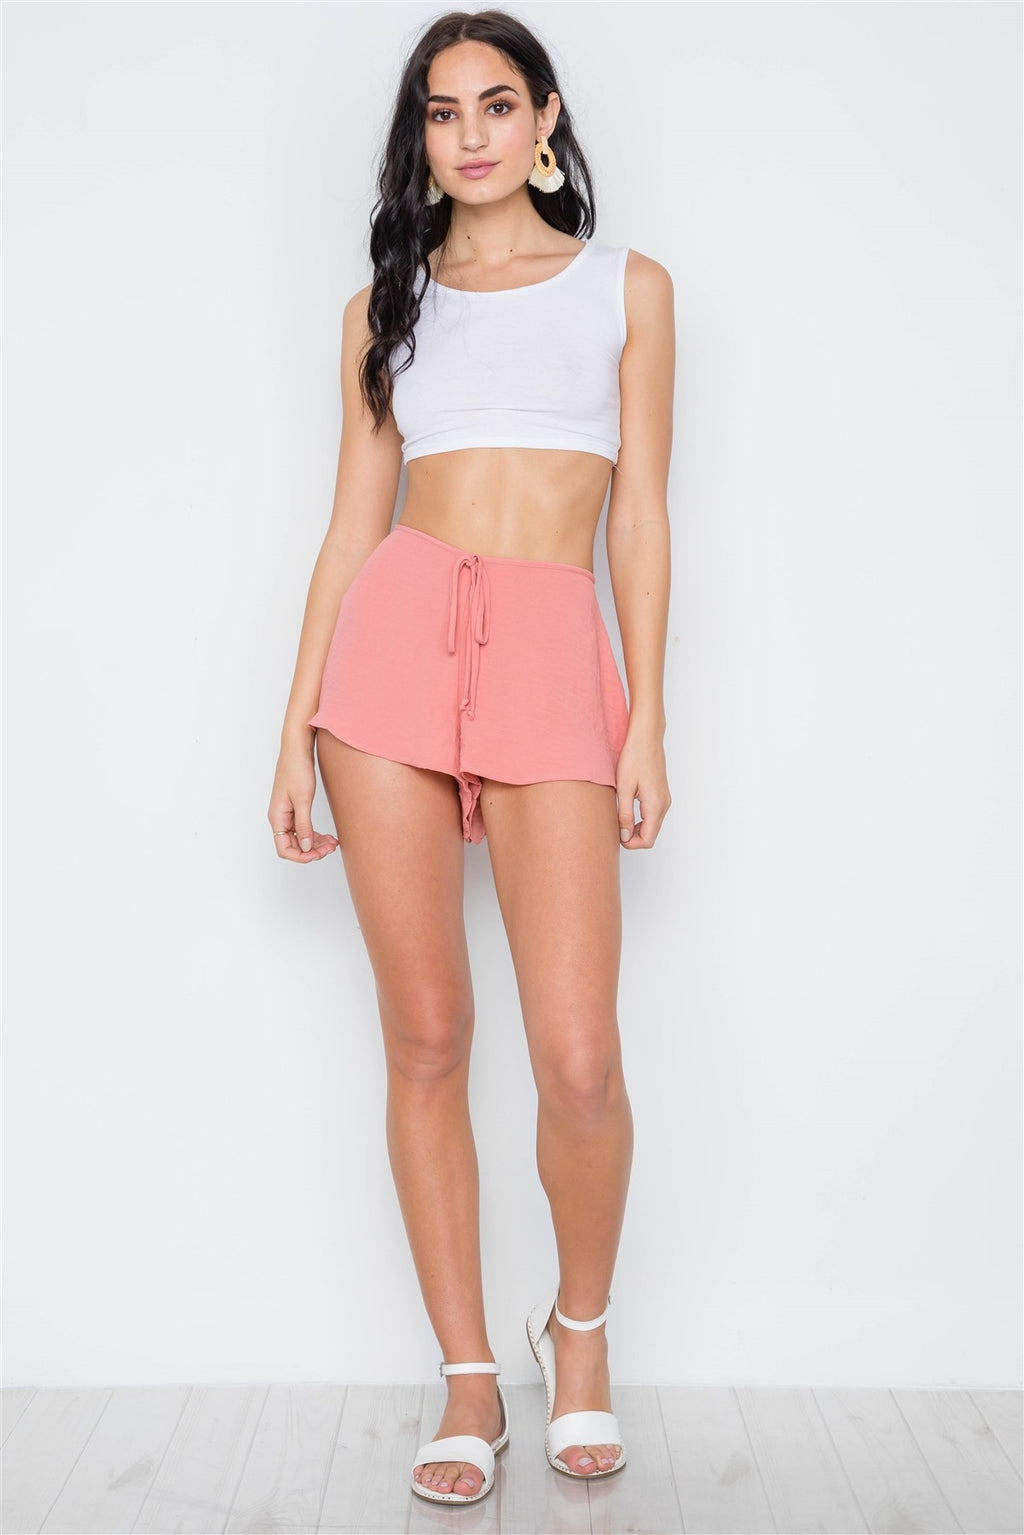 Mid-rise Light Crinkled Self Tie Shorts